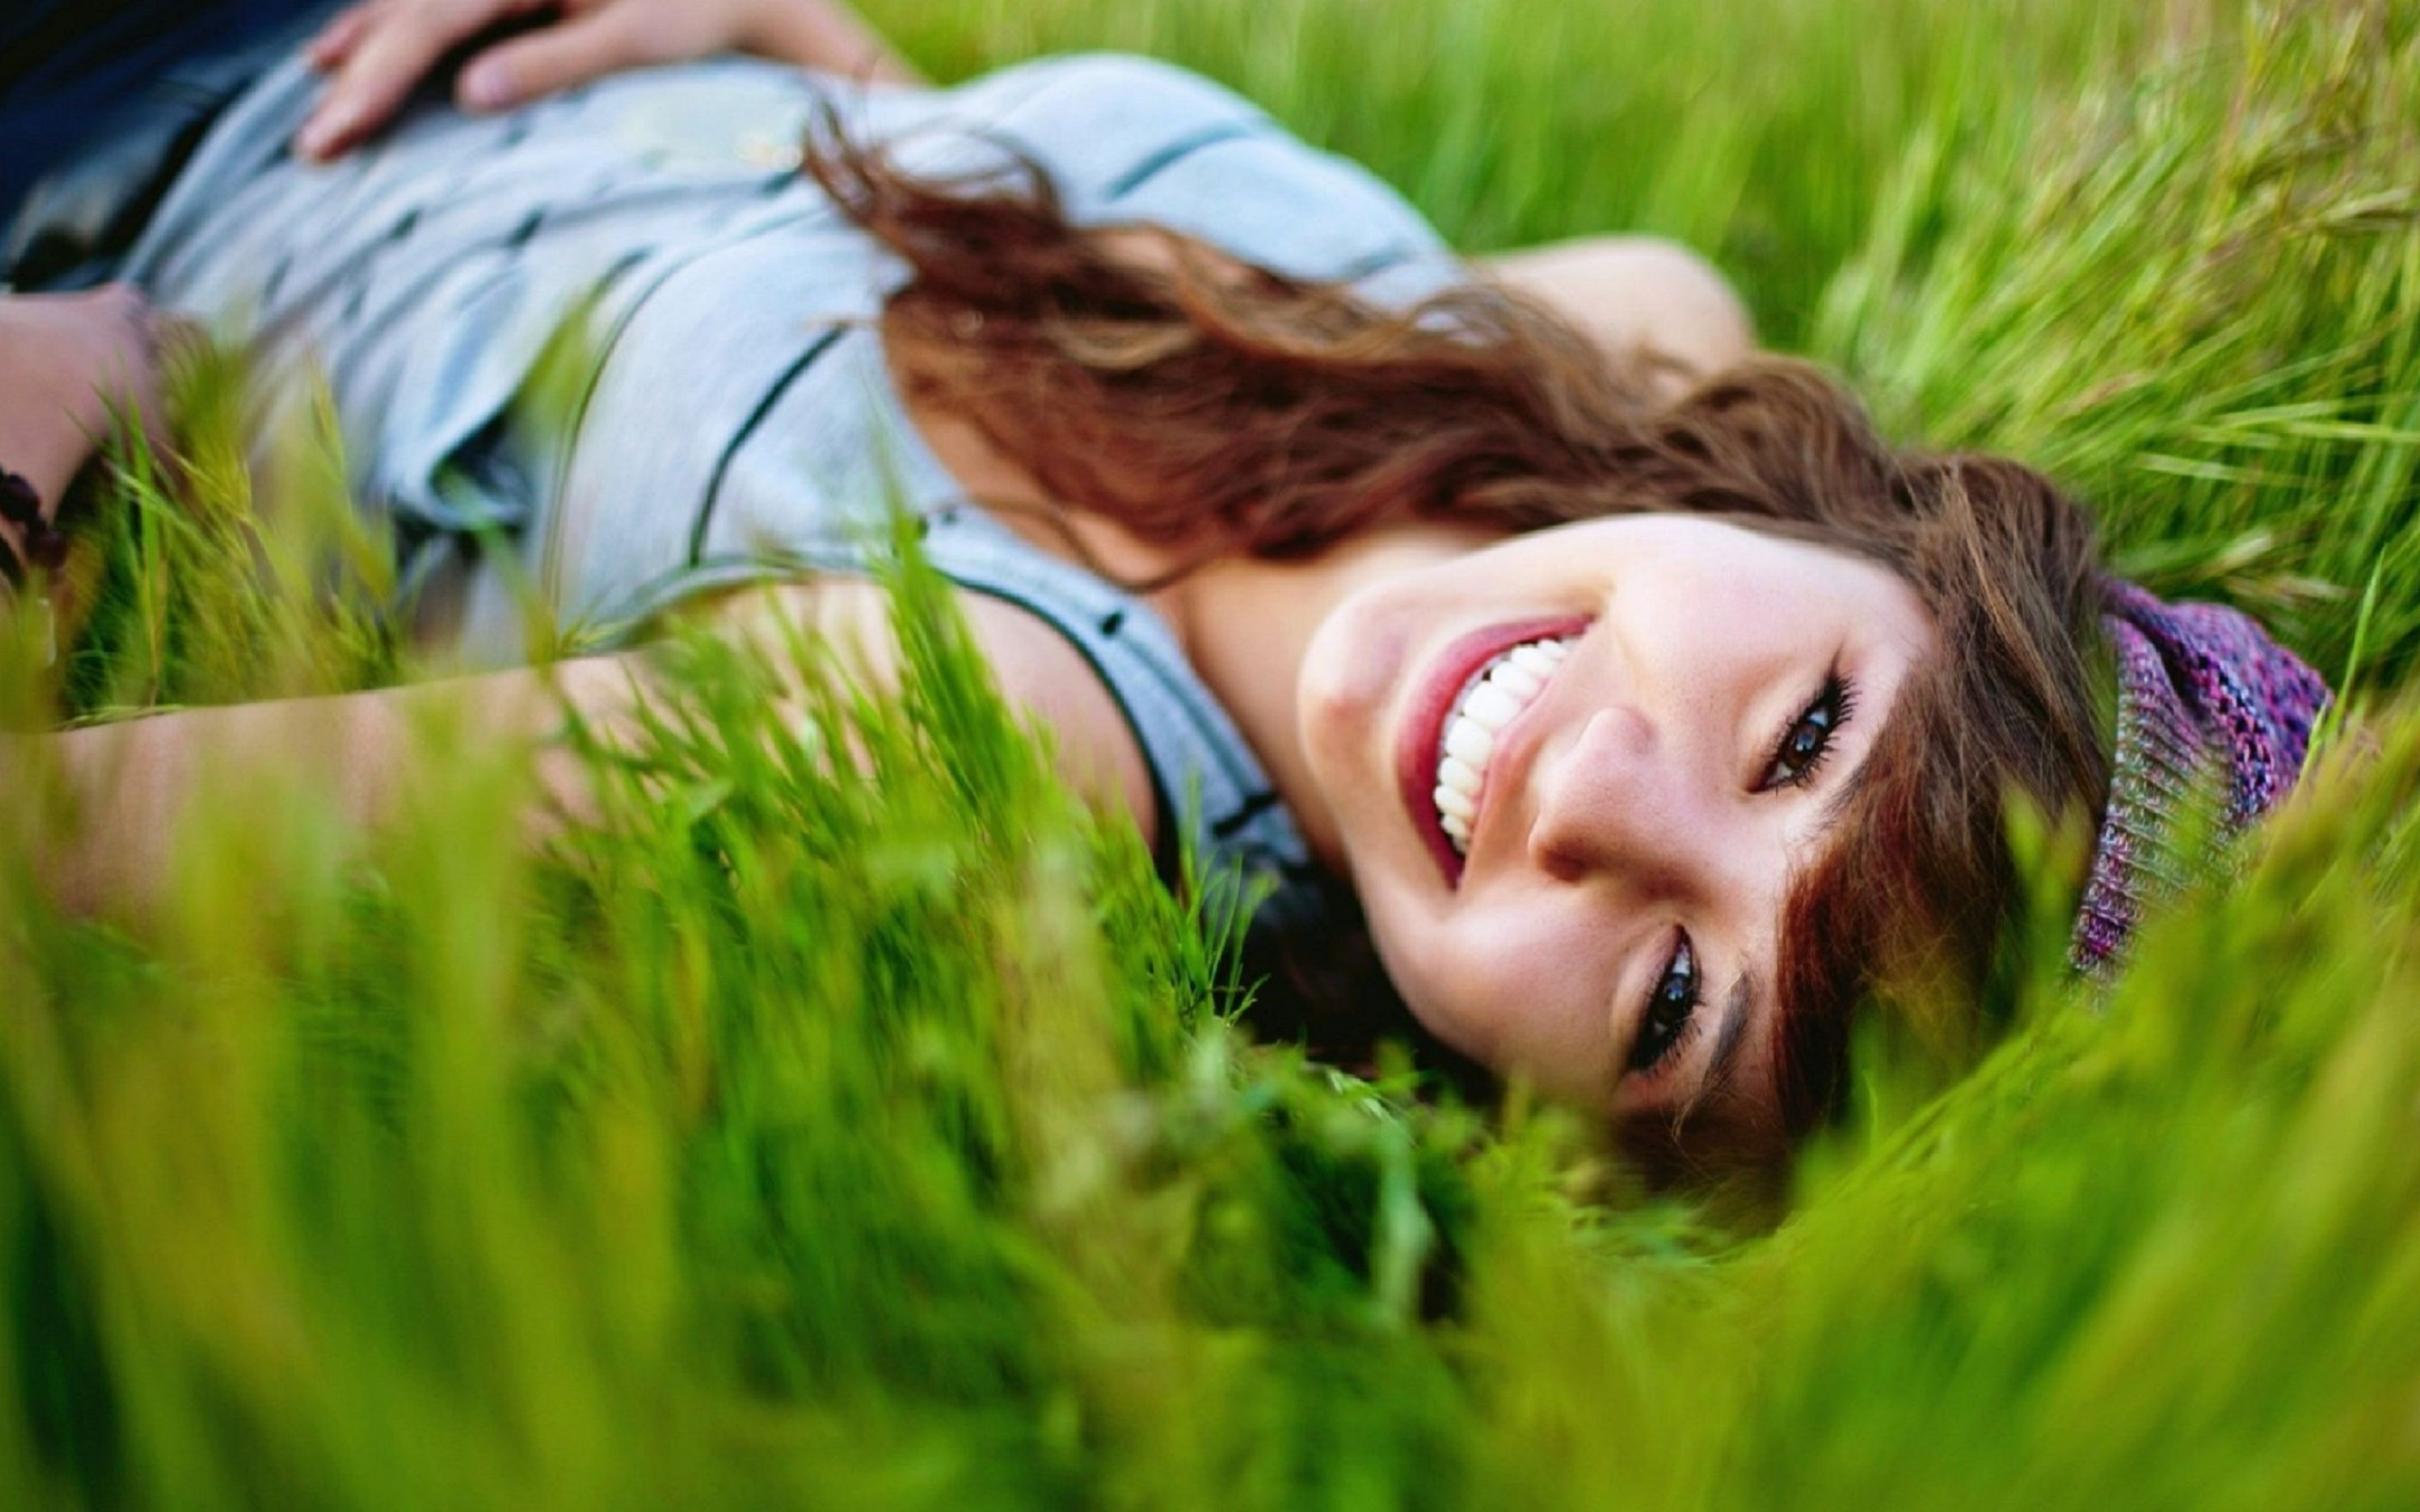 Download free HD Smiling Girl In Grass Wallpaper, image